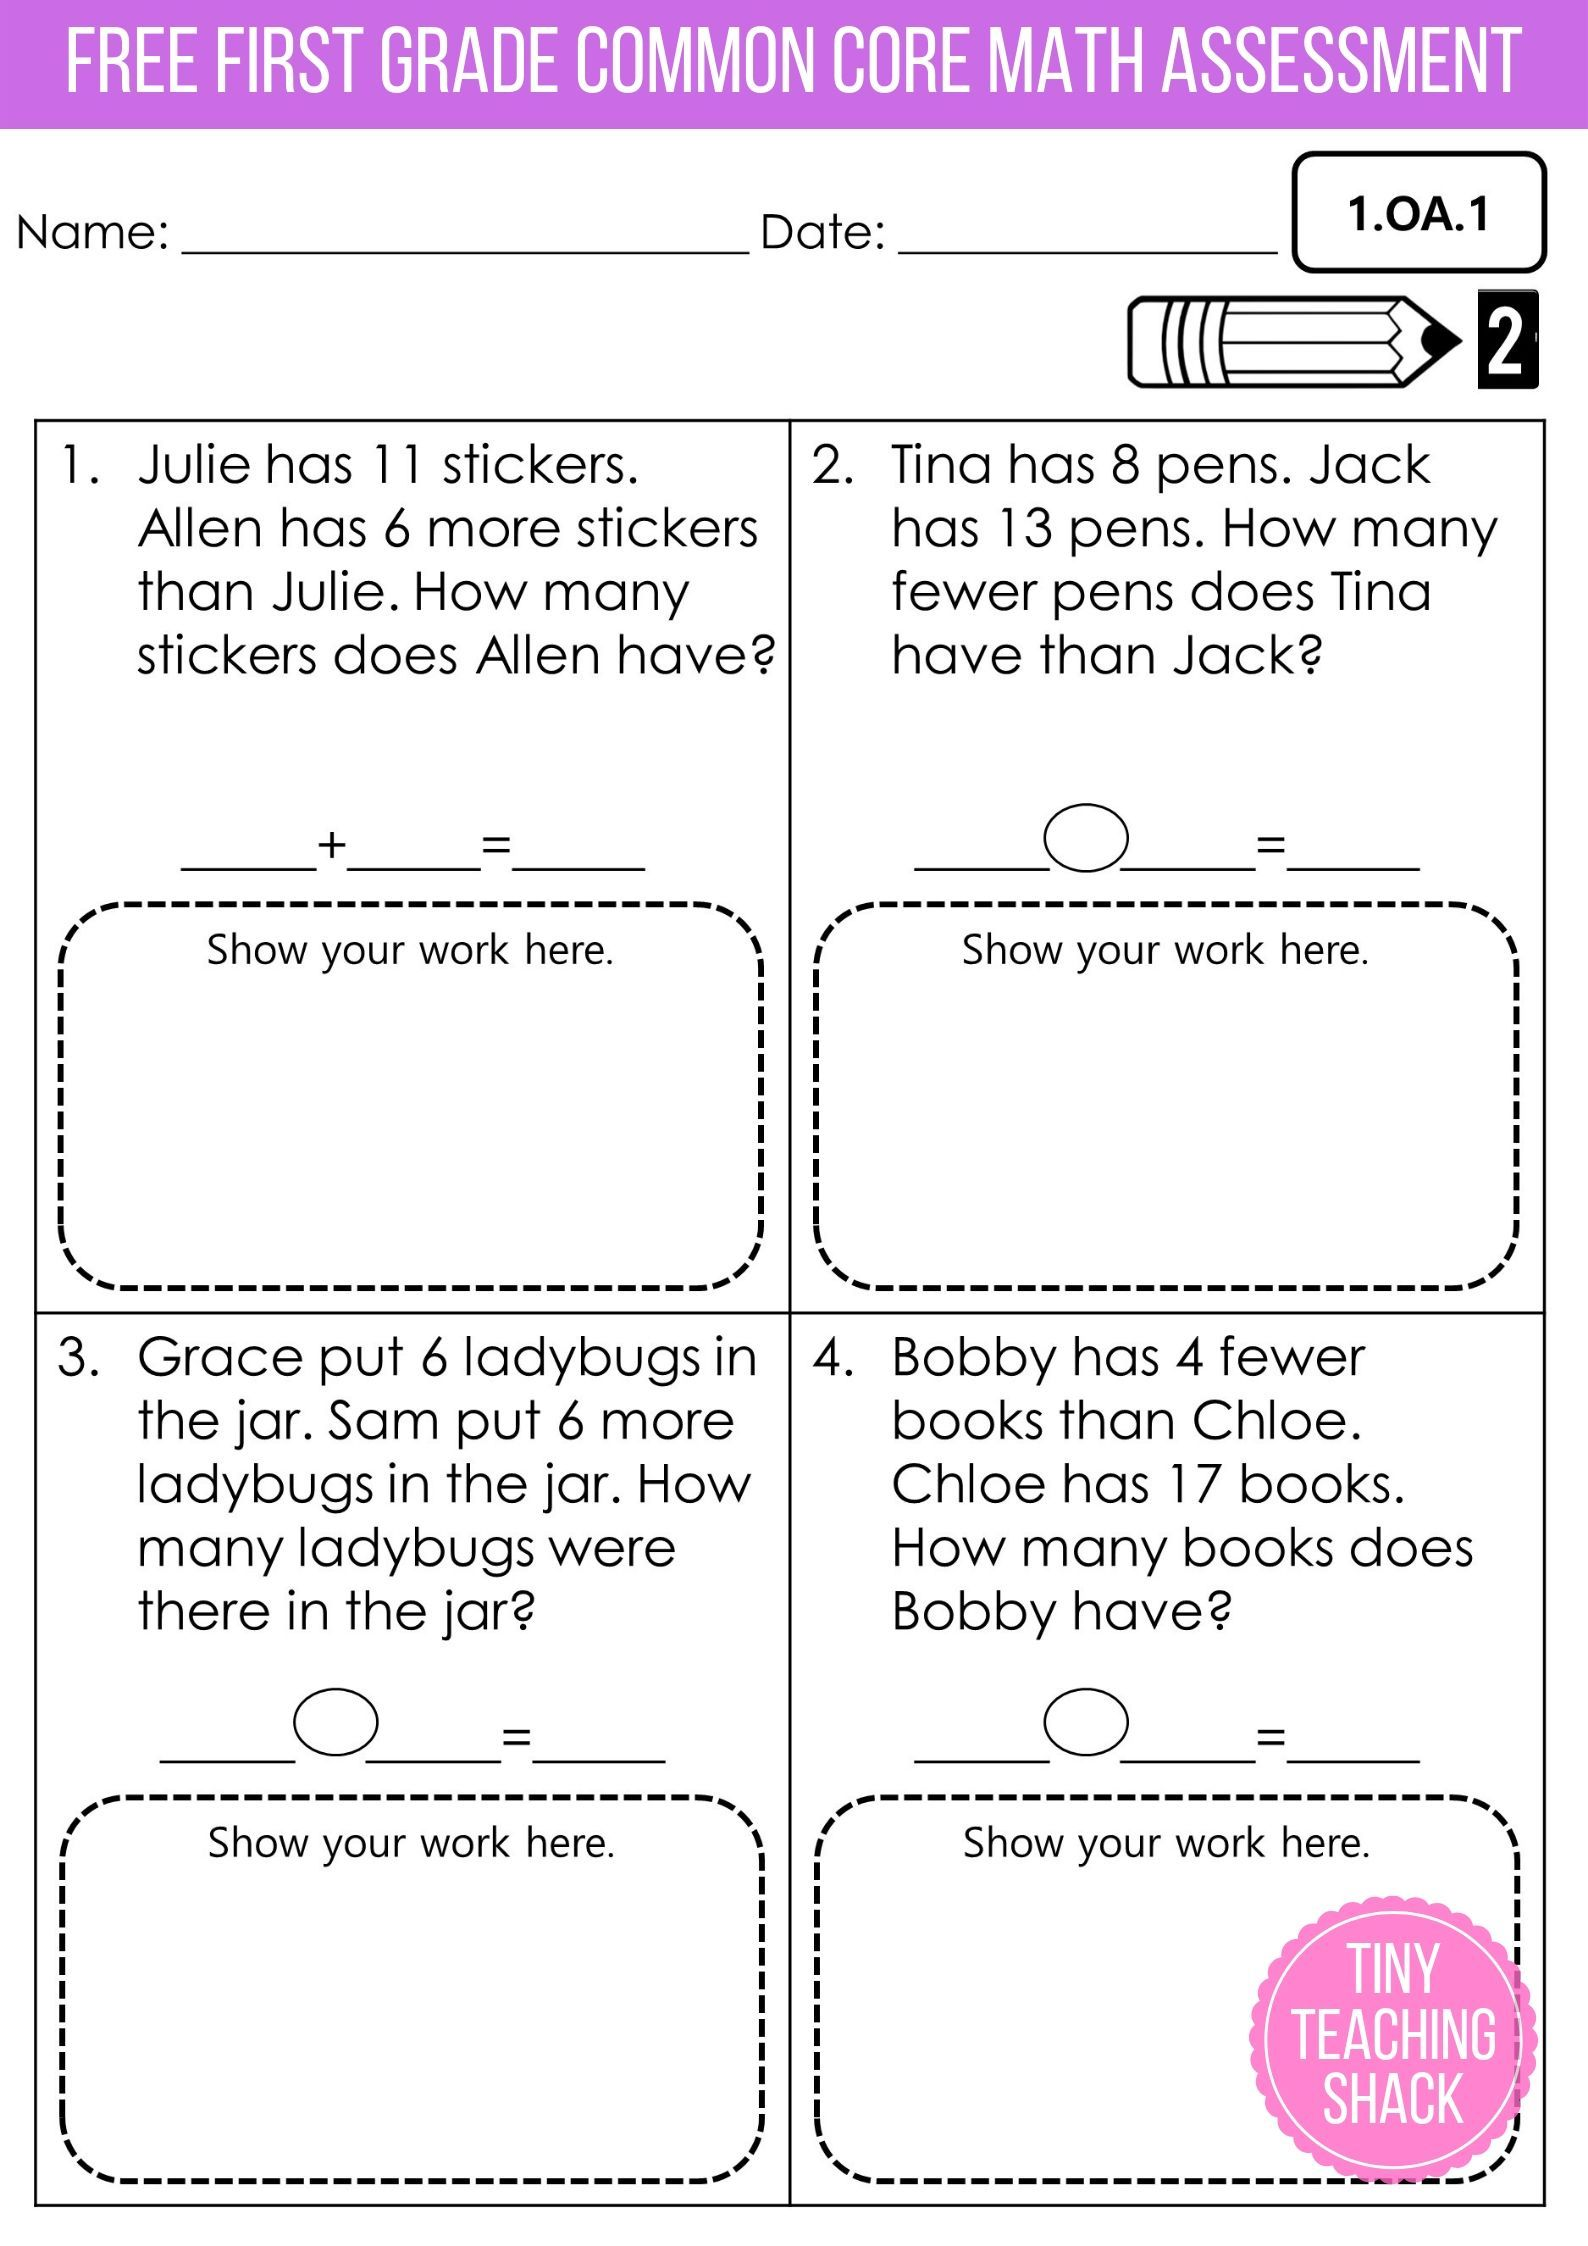 1st Grade Common Core Math Assessments Freebie